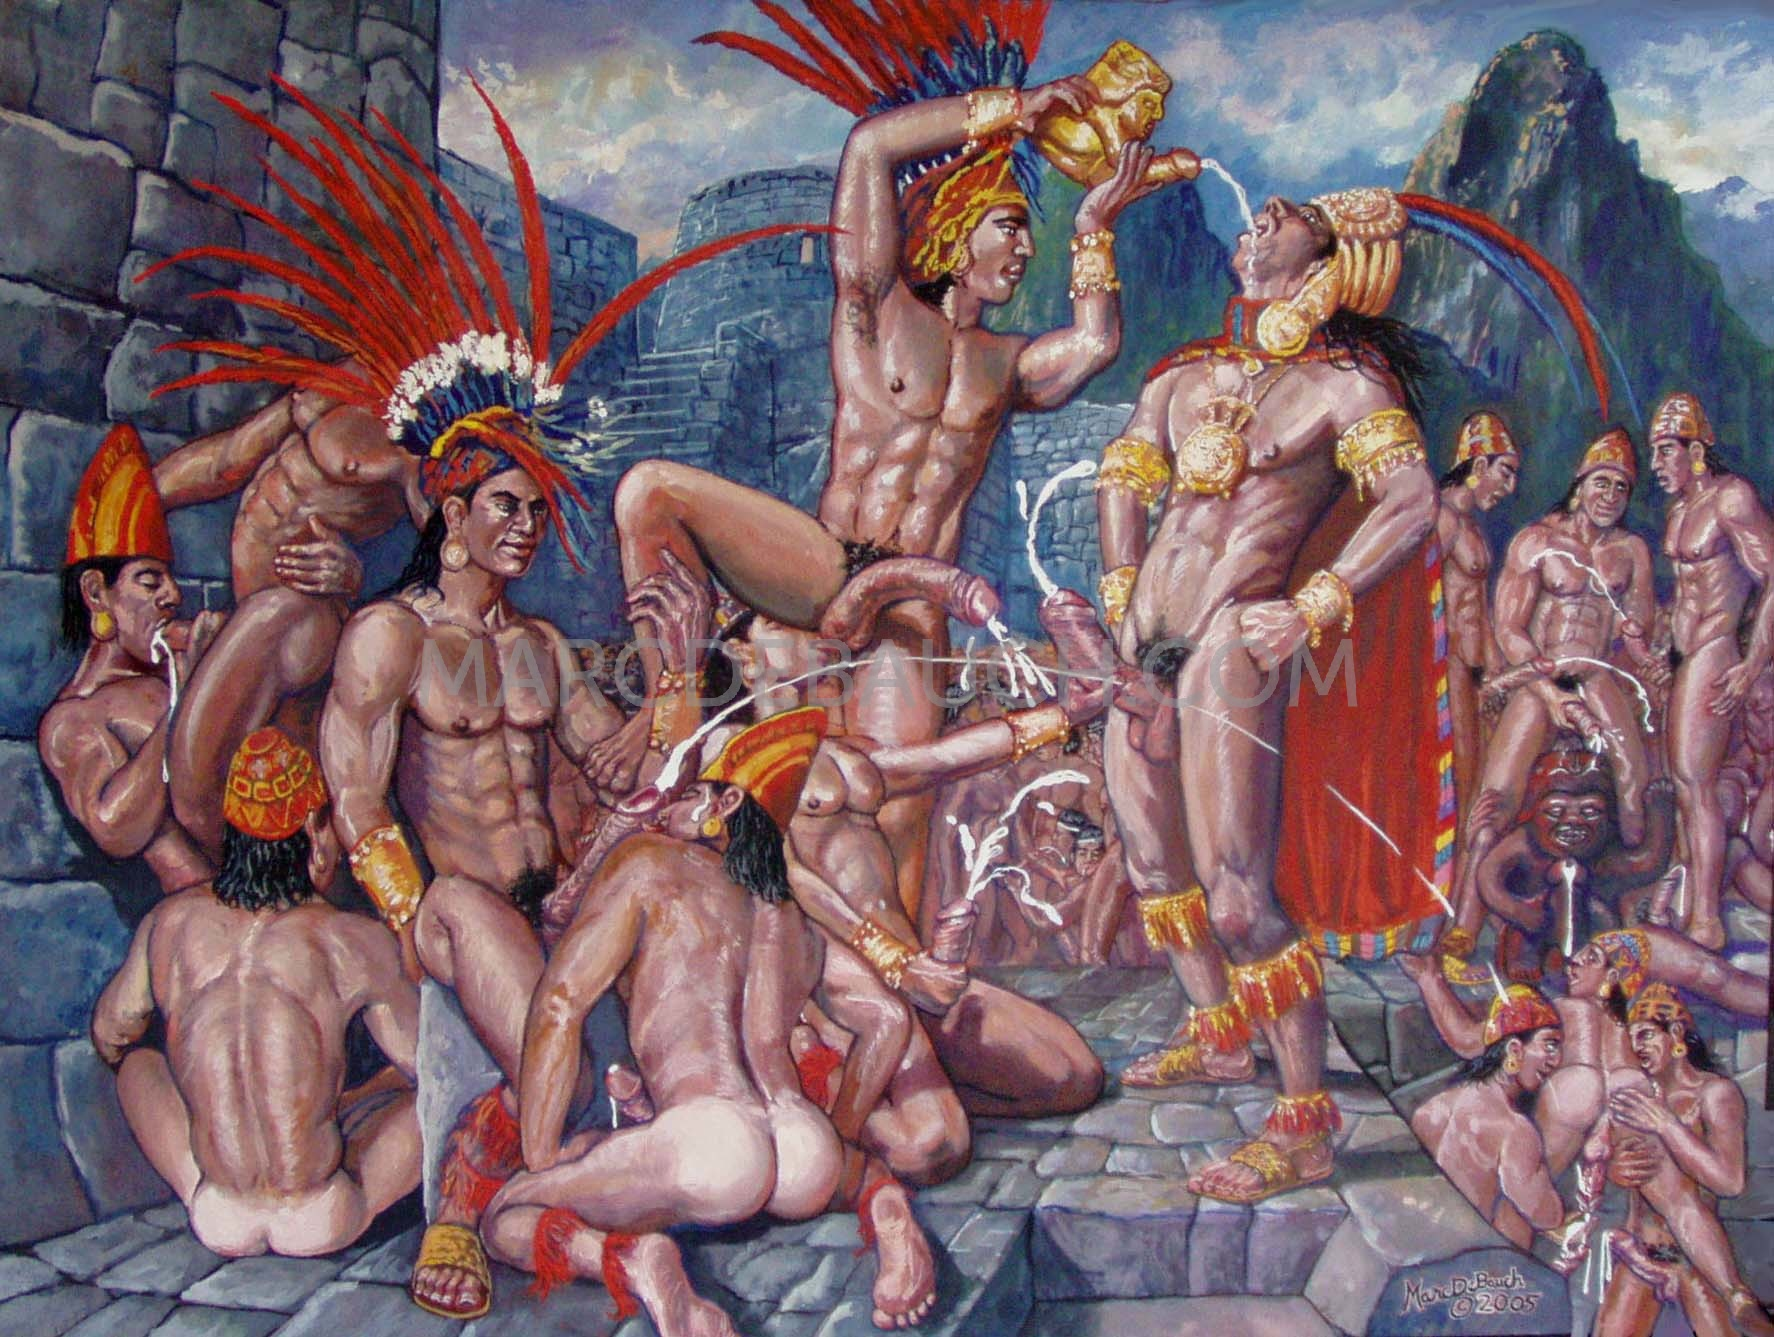 INCA CUM DRIUNKING RITUAL (Permanent collection of the Lesile Lohman Museum)